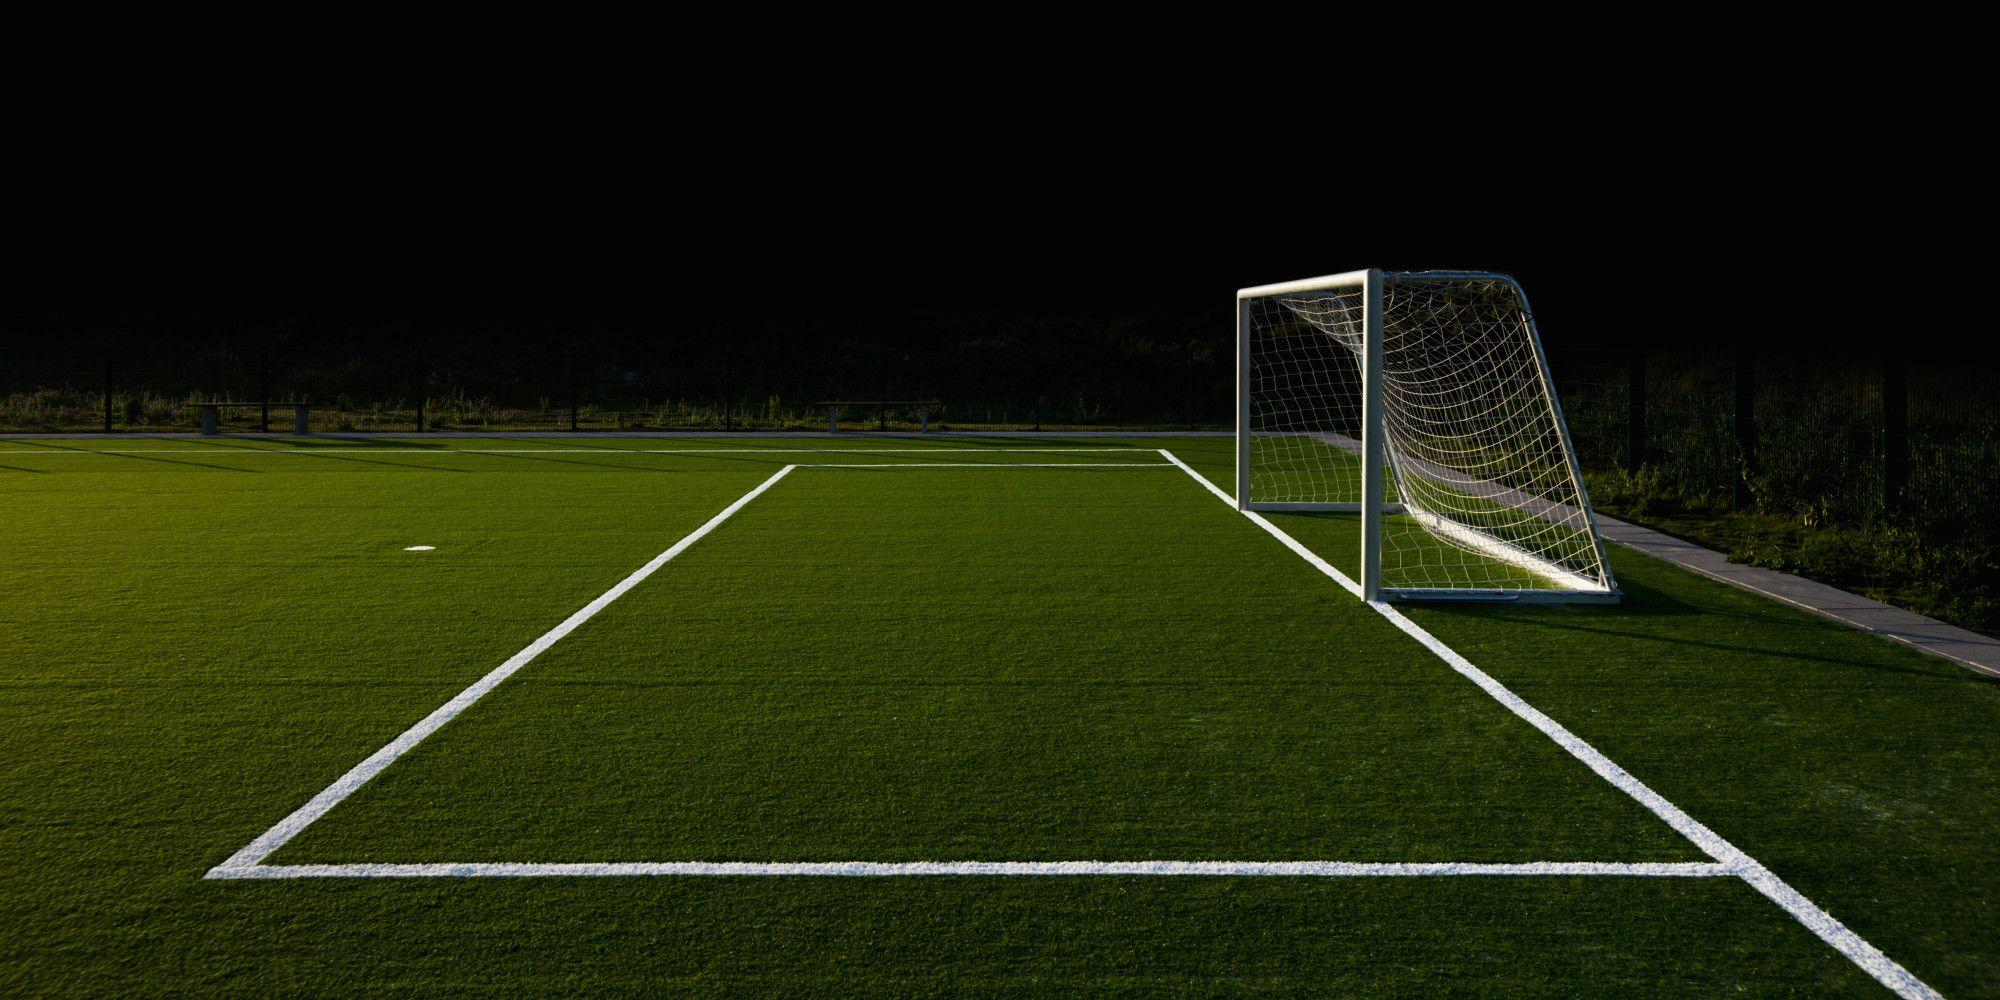 Soccer Field Wallpapers